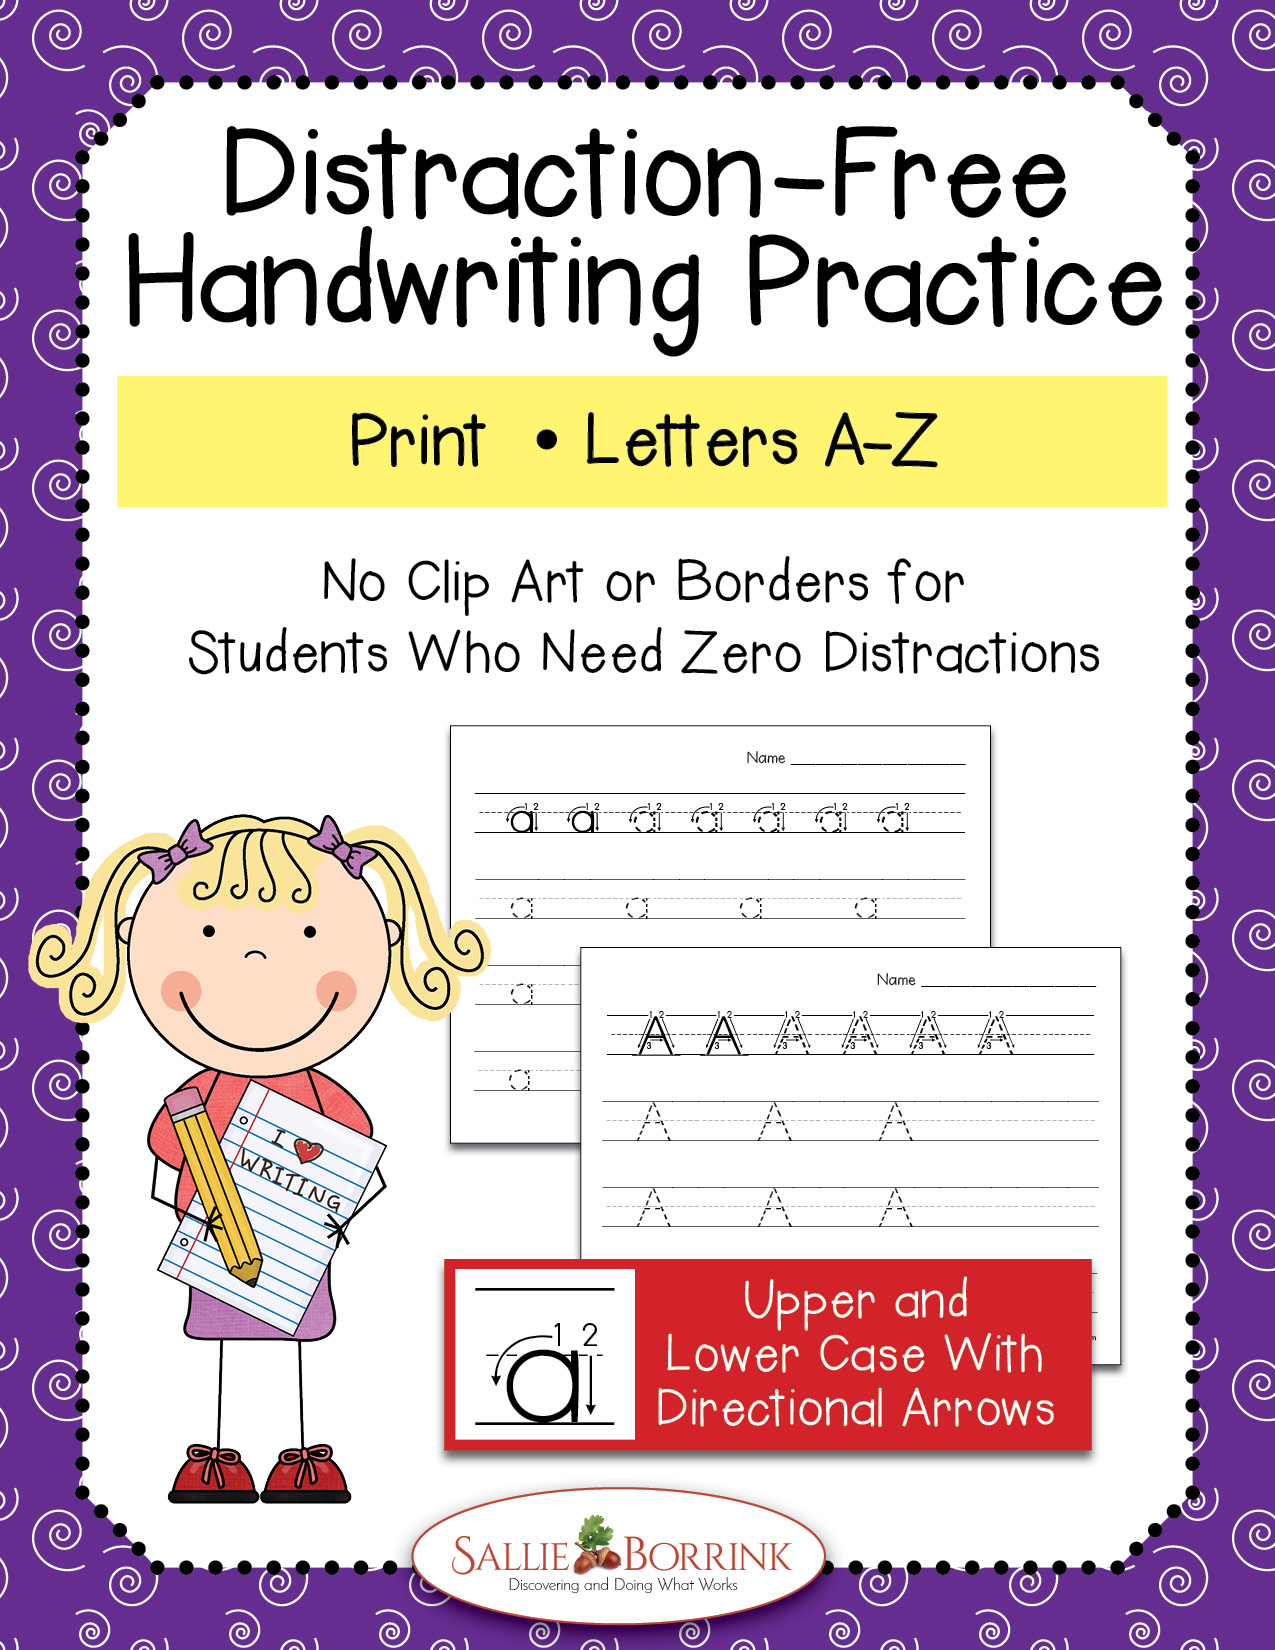 Distraction-Free Print Handwriting Practice – Upper and Lower Case with Arrows